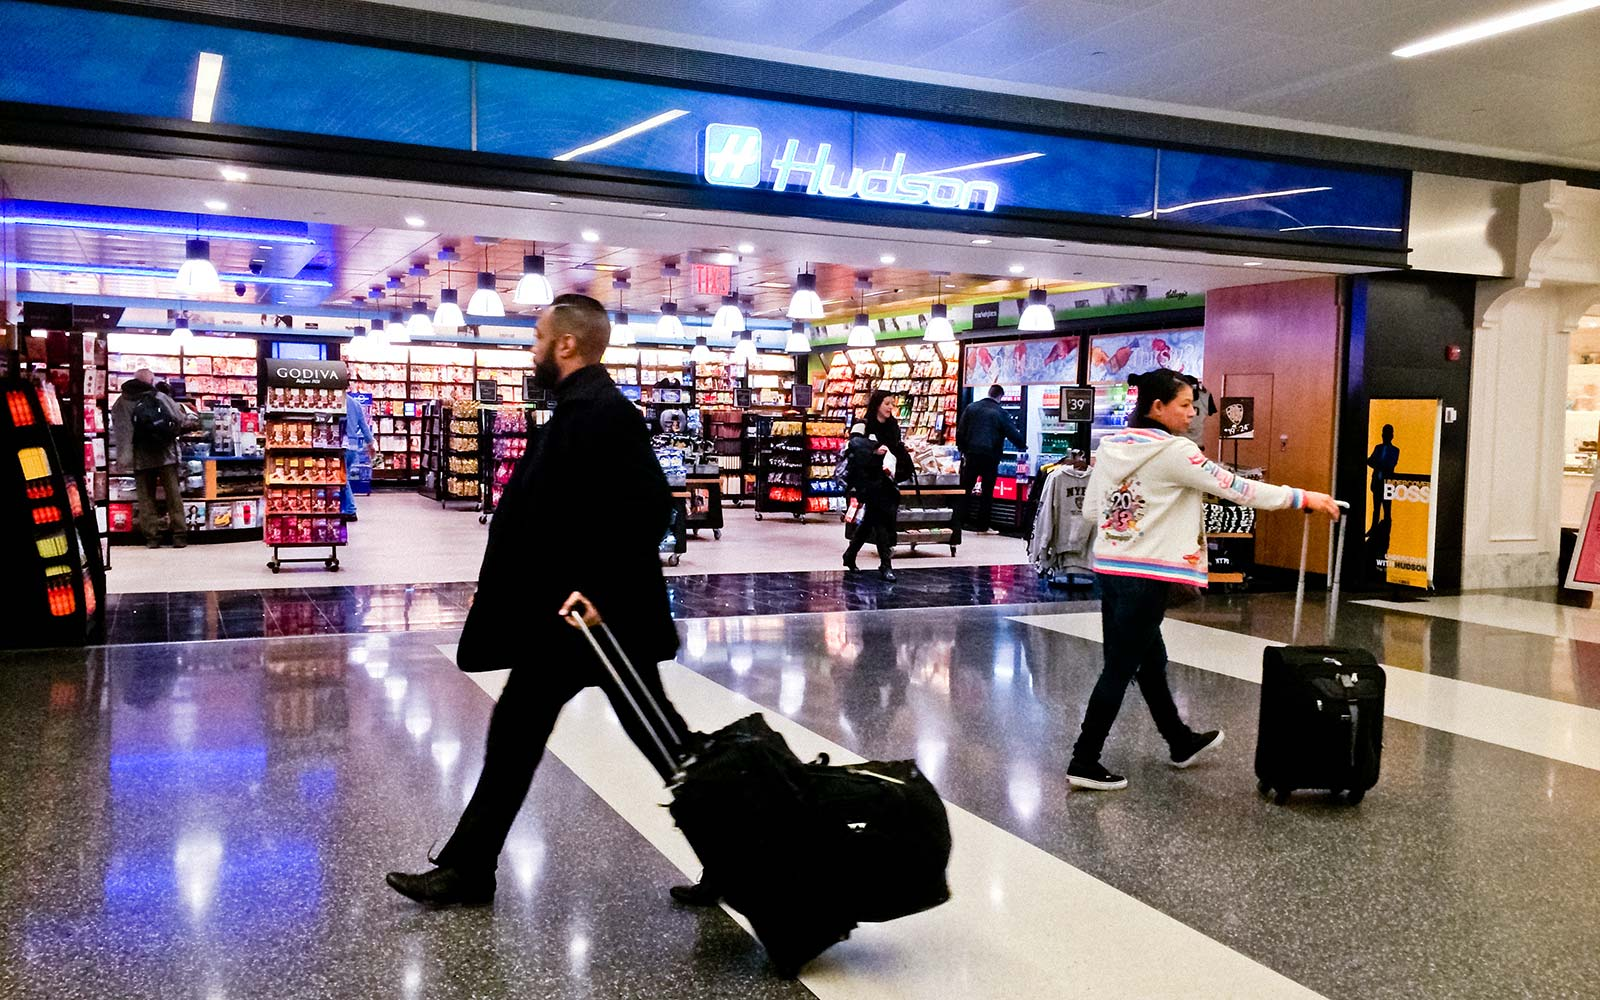 JFK Airport Terminal Guide — Tips on Terminals 1, 2, 4, 5, 7, 8 ...